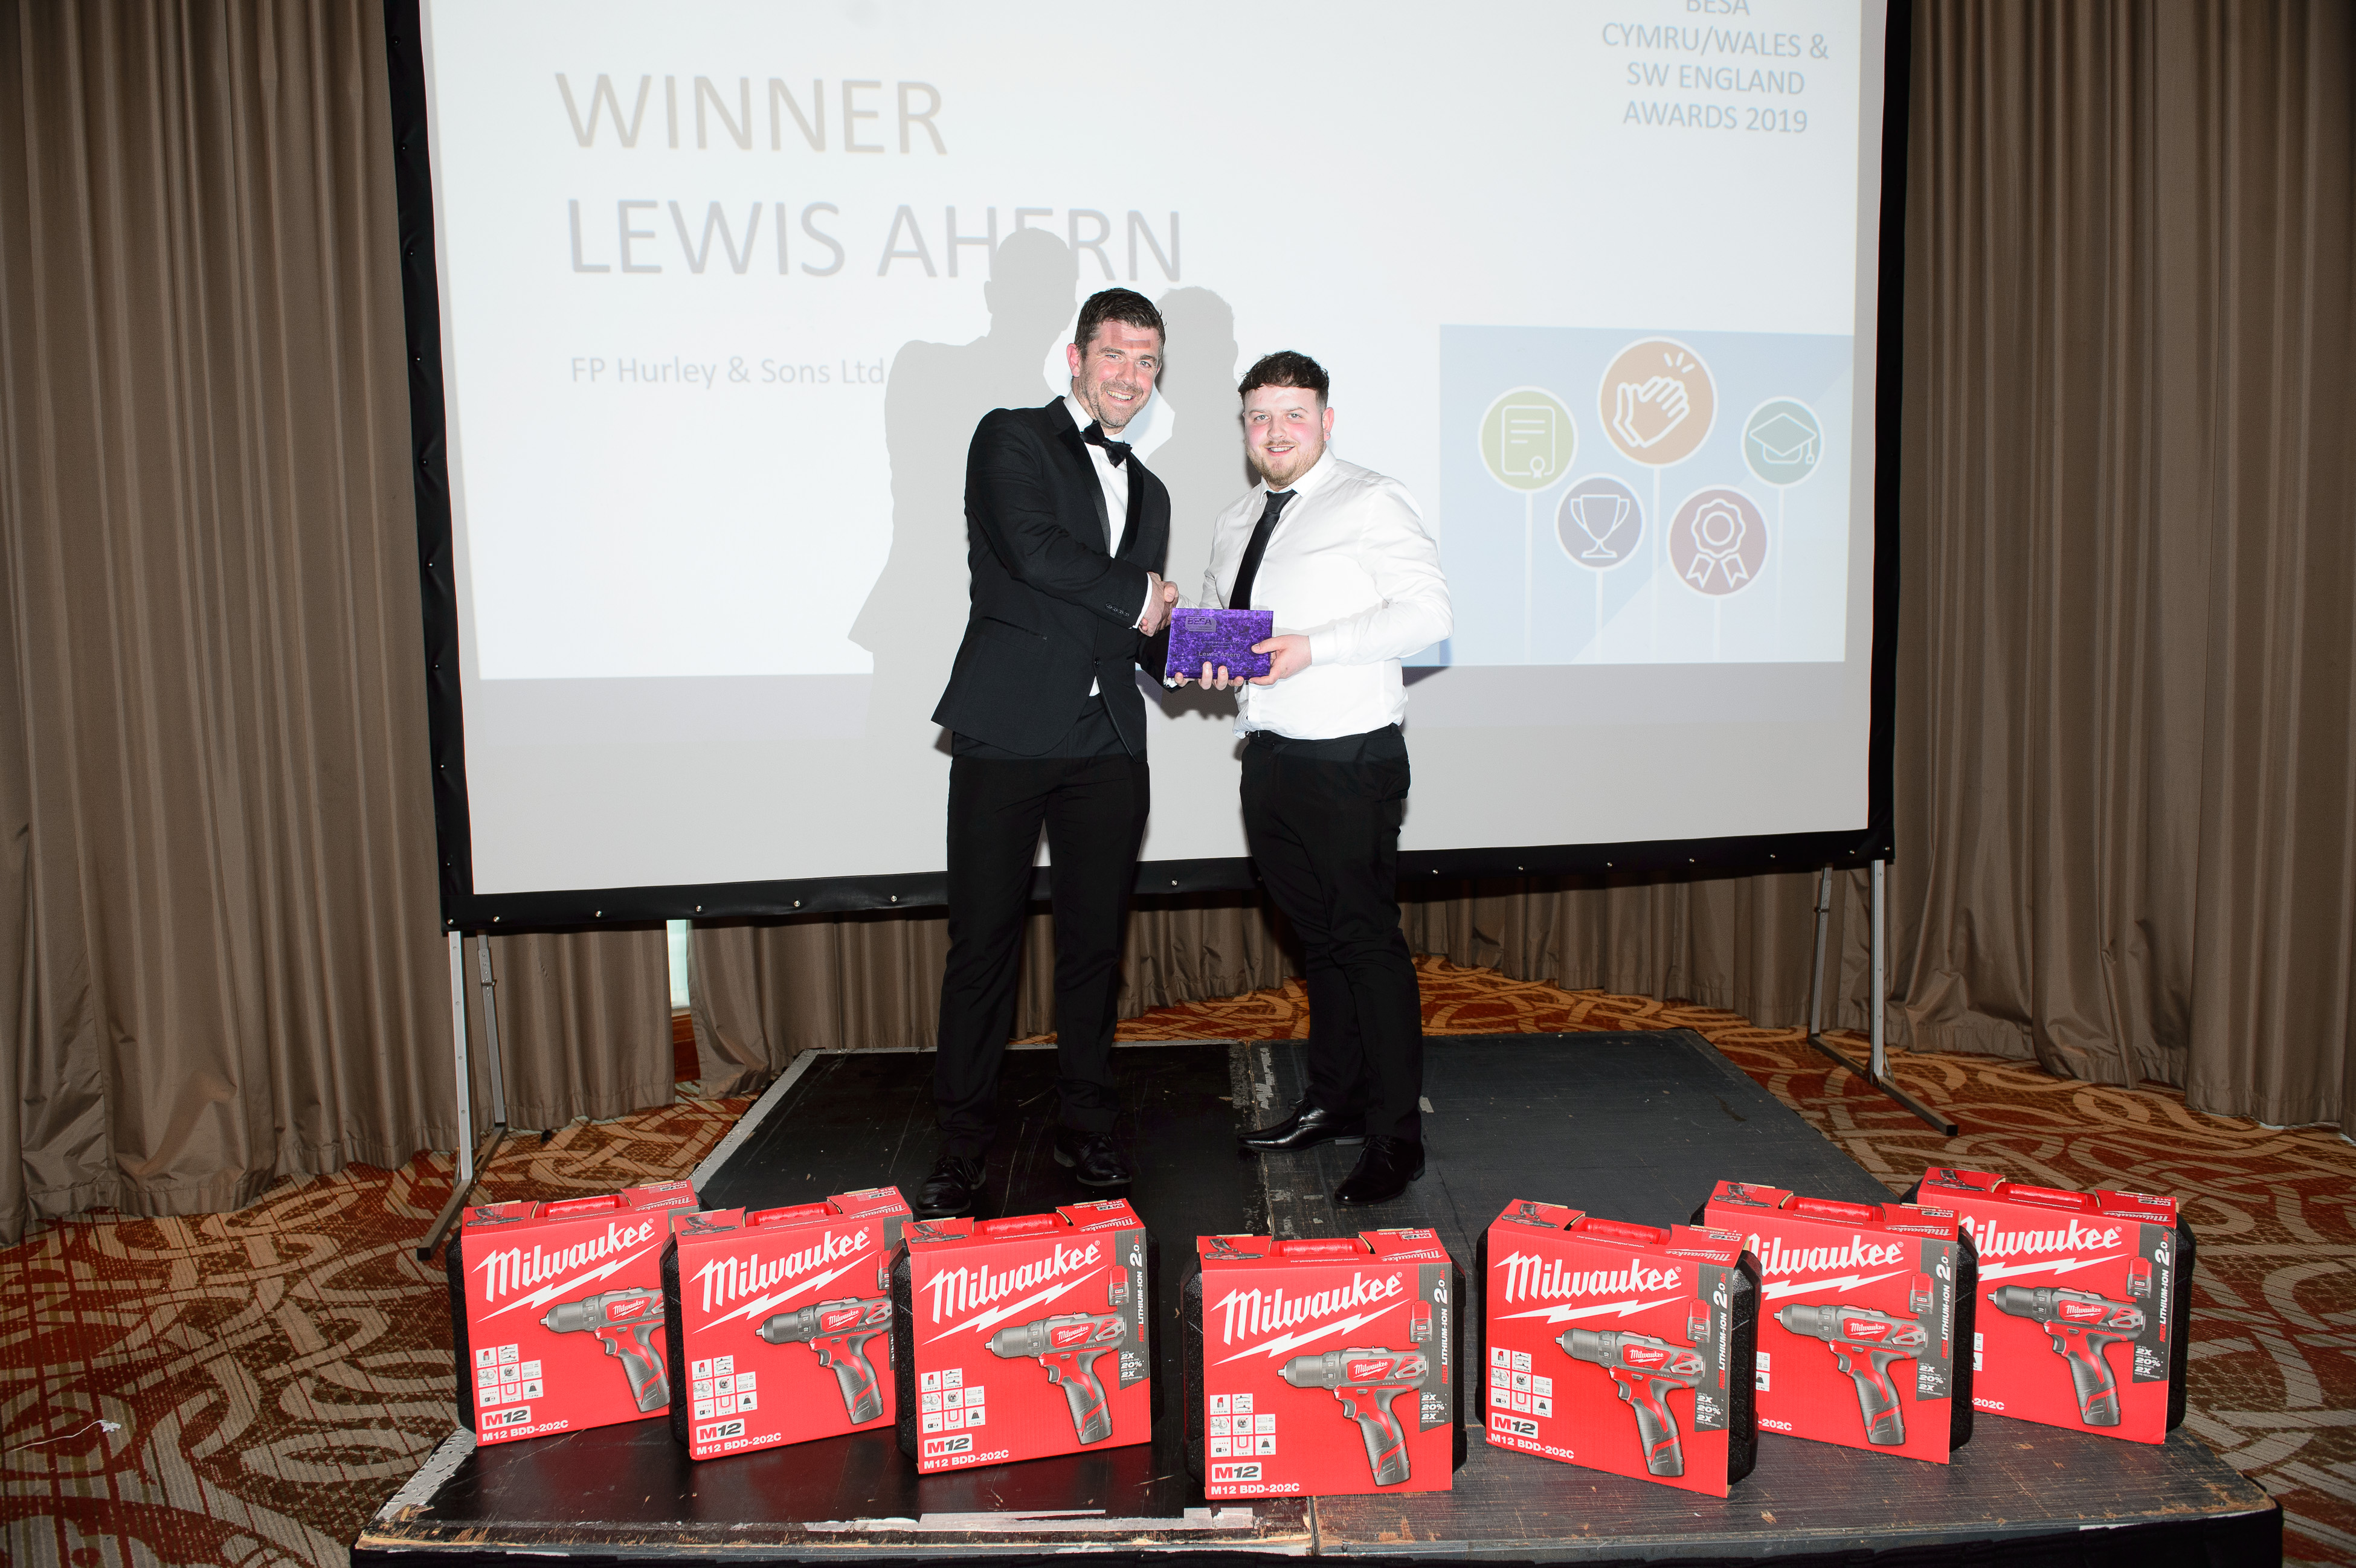 Chair's Award, Lewis Ahern, FP Hurley & Sons Ltd